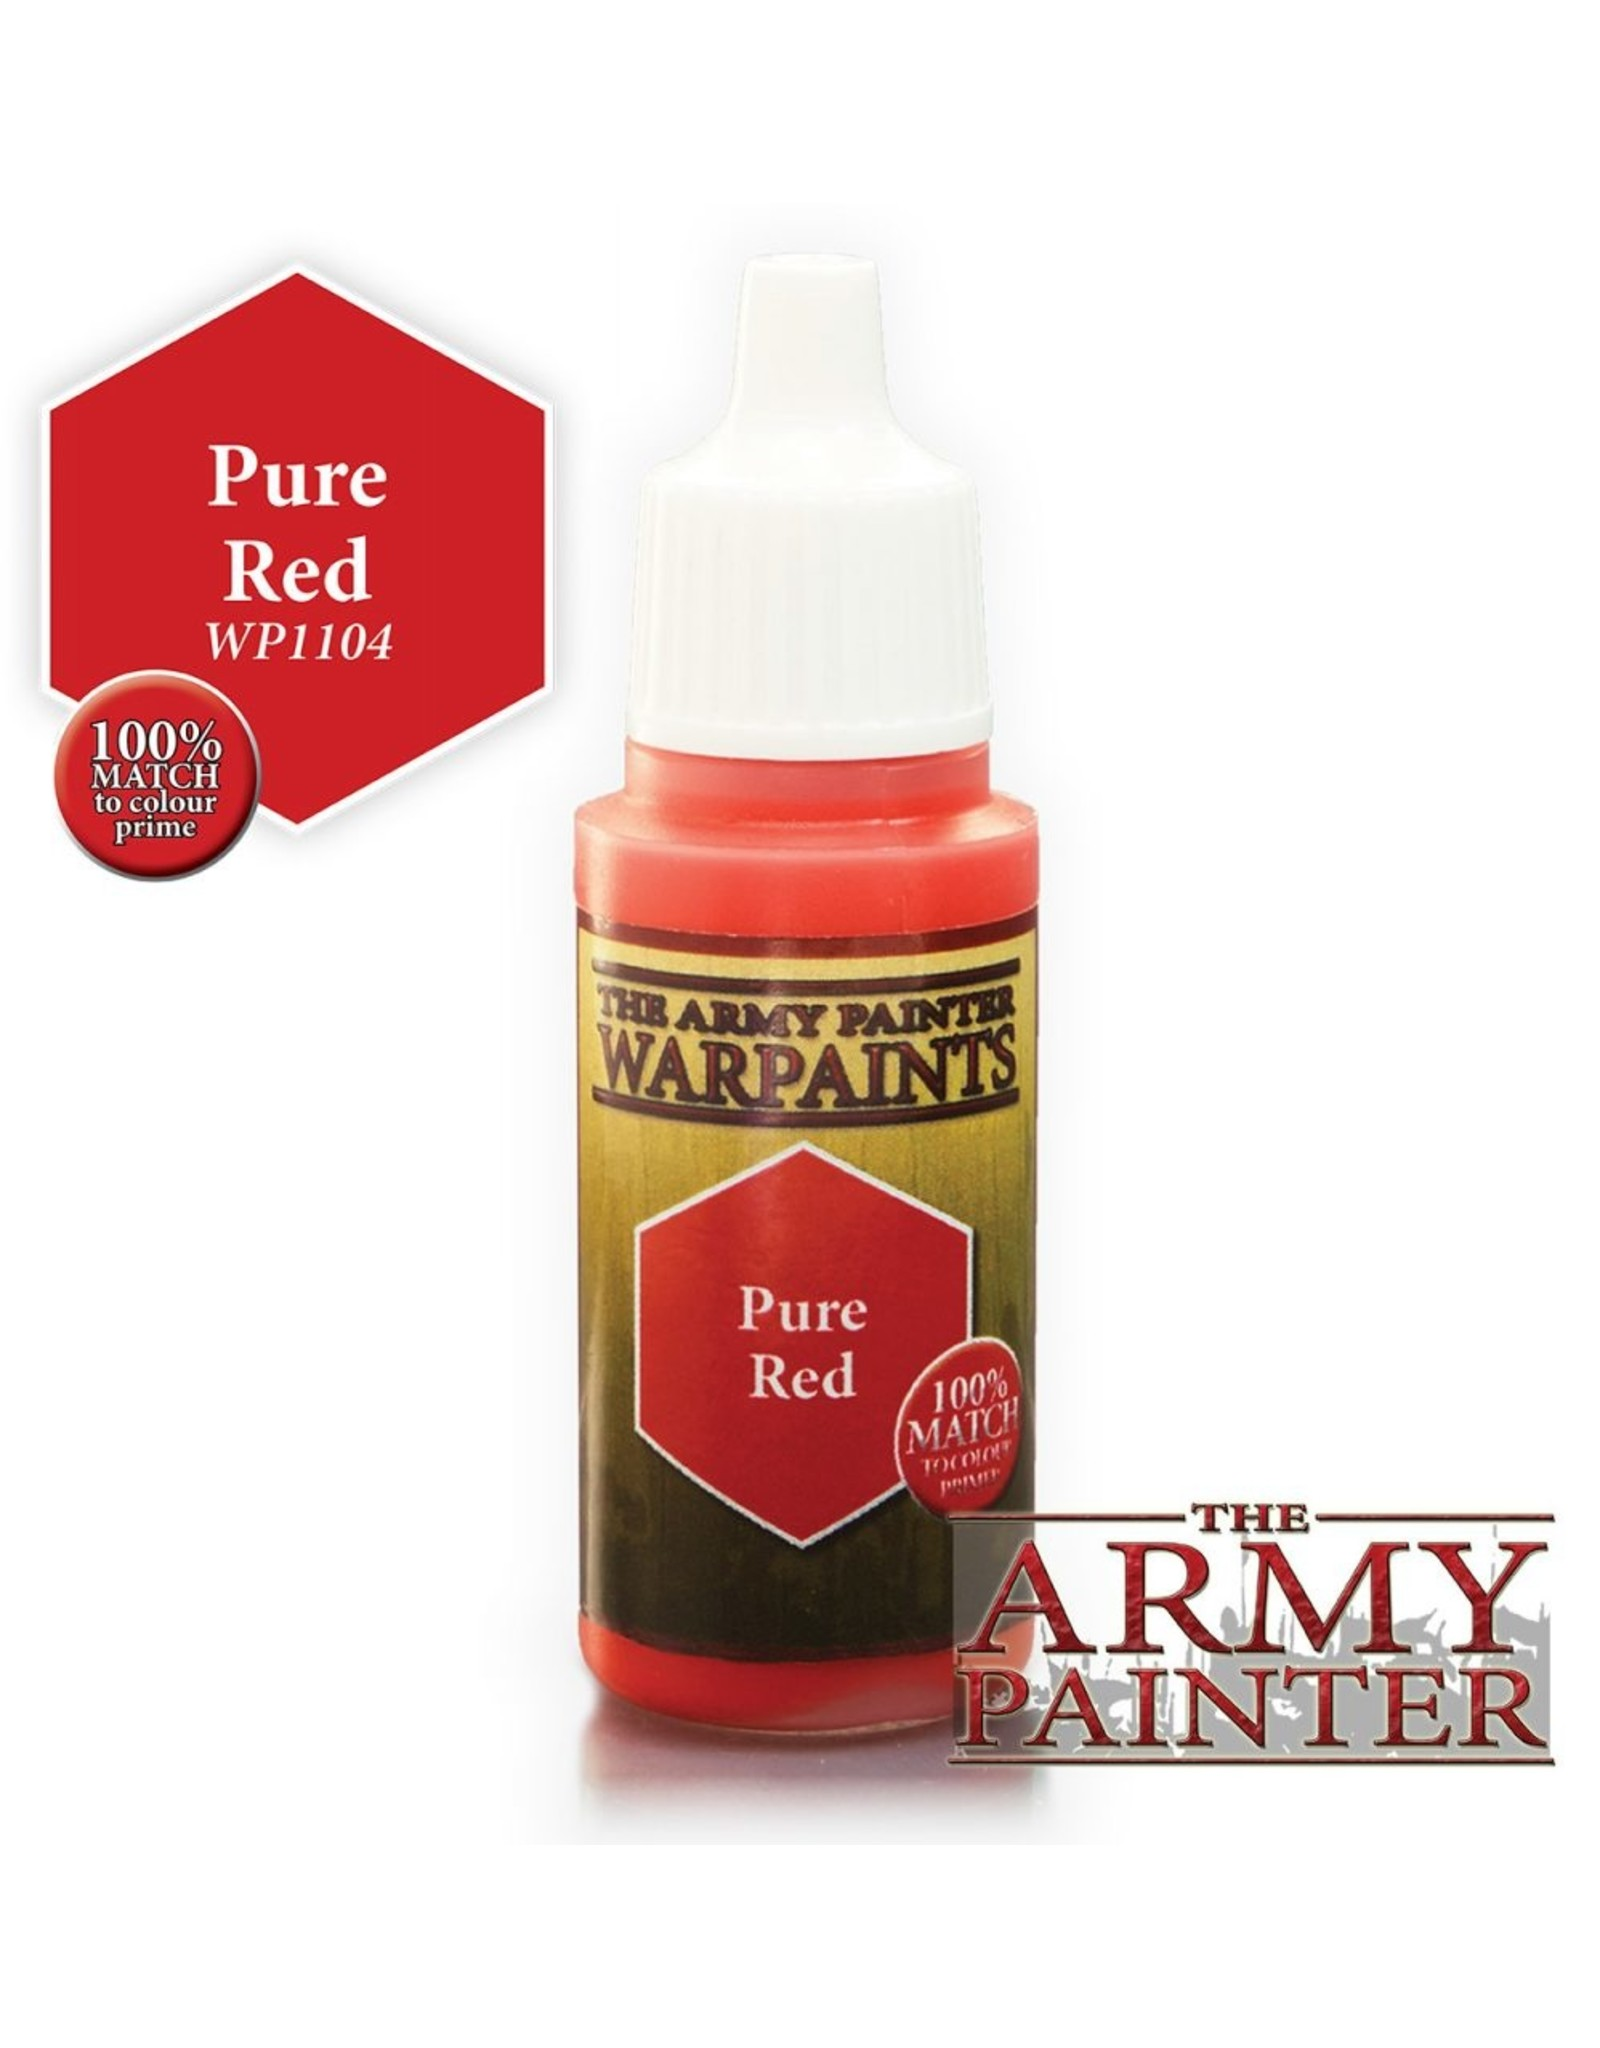 THE ARMY PAINTER ARMY PAINTER WARPAINTS PURE RED